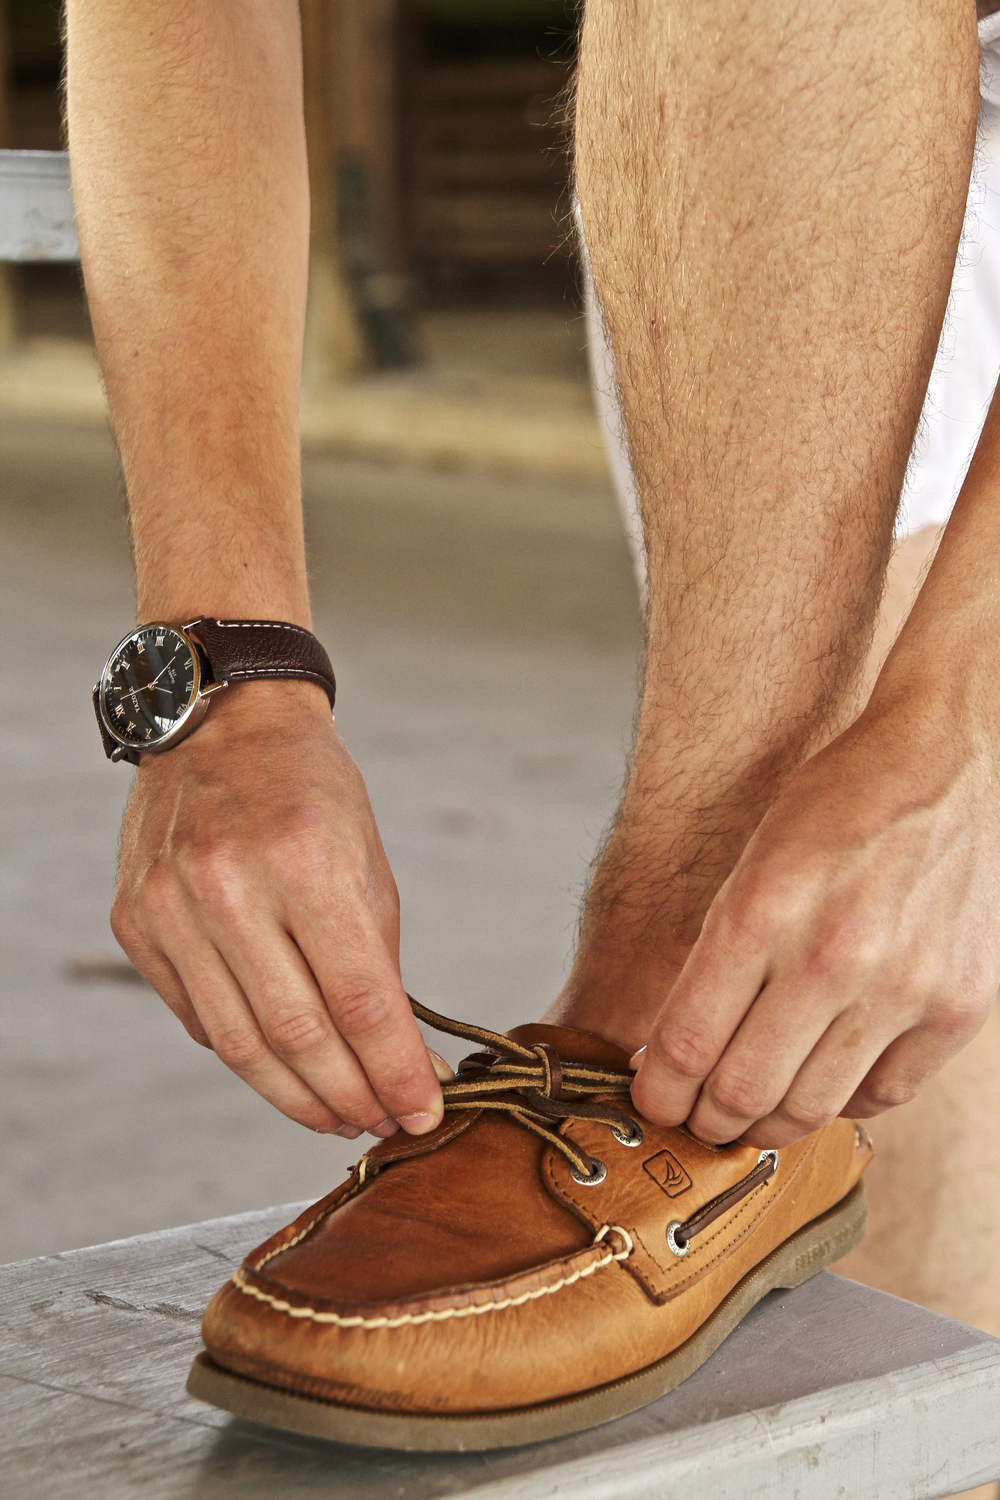 sperry shoes giveaway and properly wearing boat shoes blog